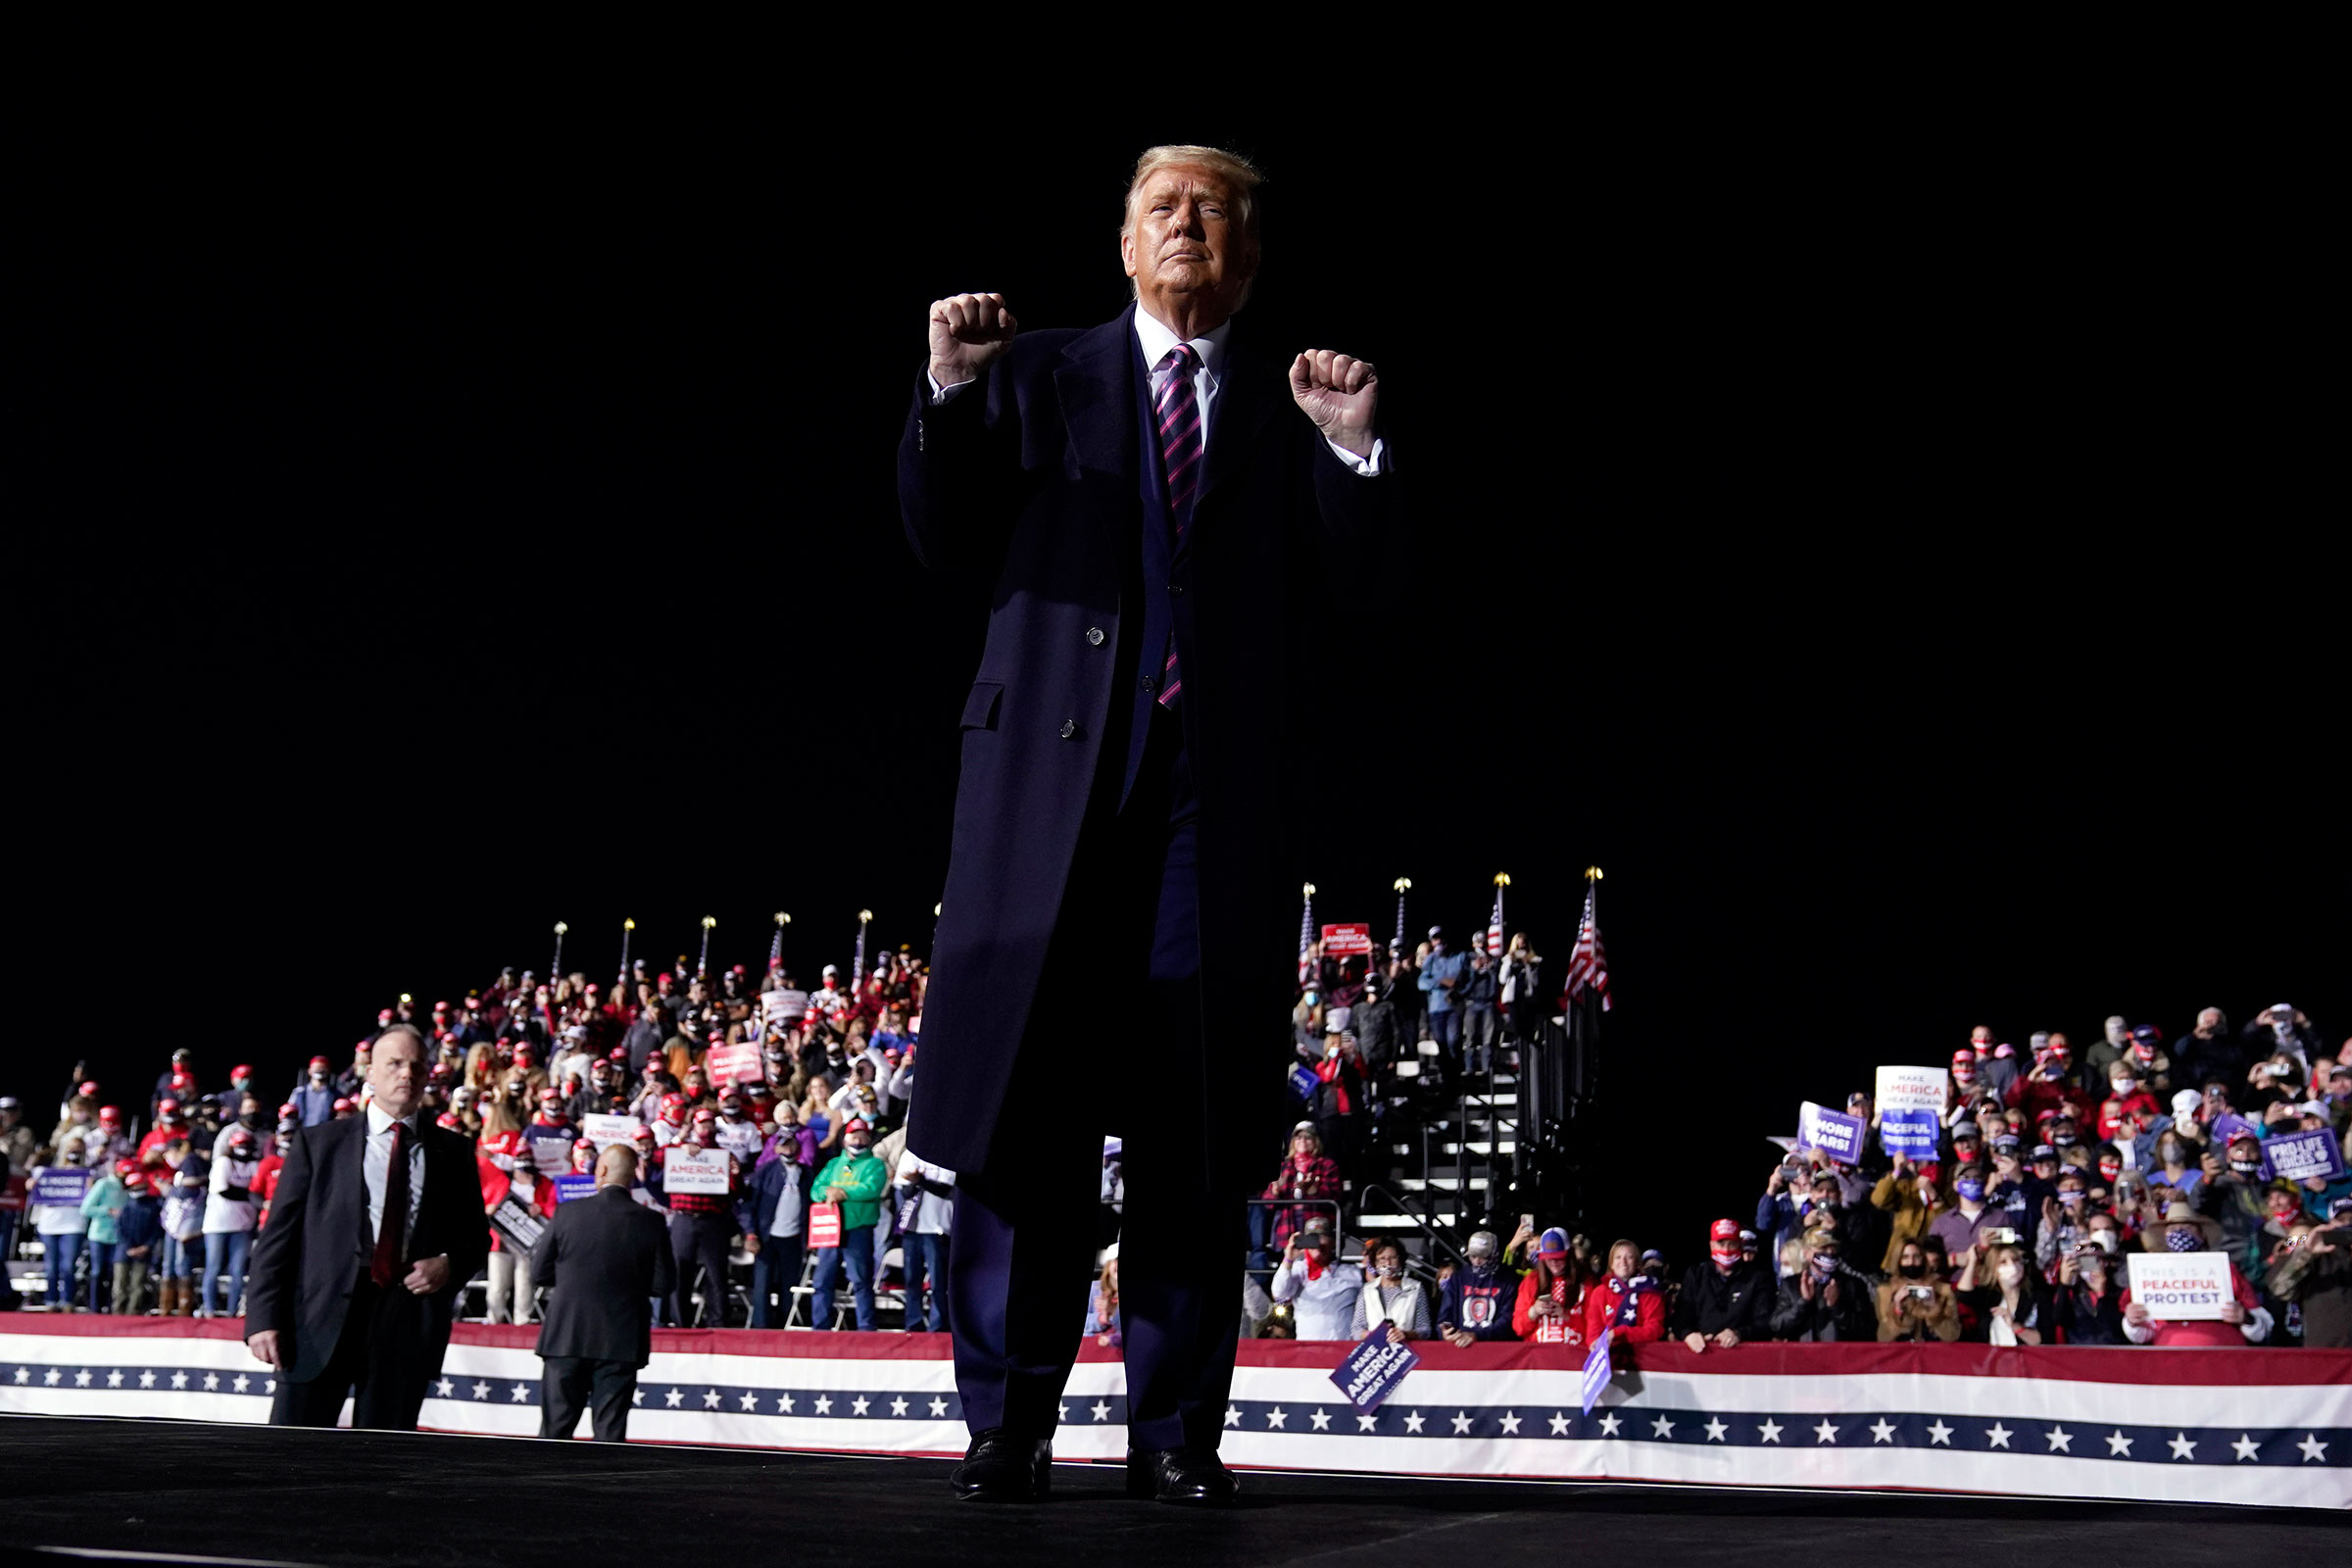 President Donald Trump gestures to the crowd as he finishes speaking at a campaign rally at Bemidji Regional Airport, Friday, Sept. 18, 2020, in Bemidji, Minn. (AP Photo/